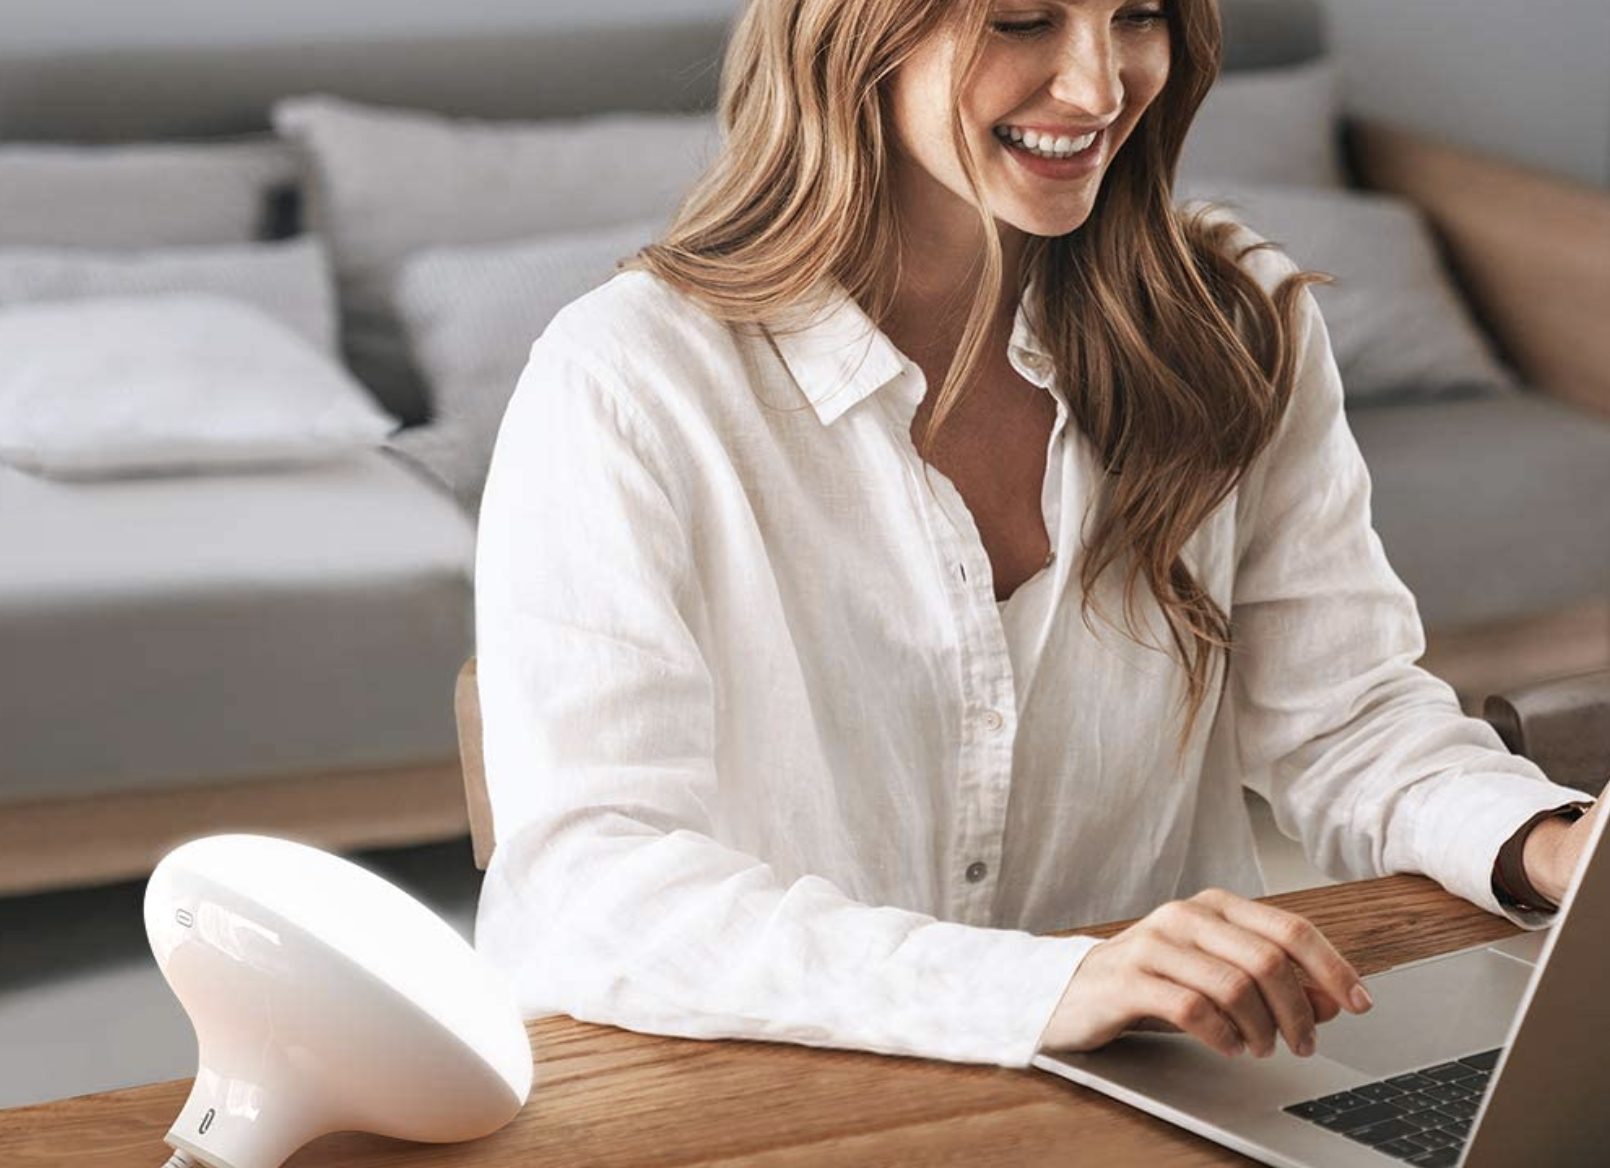 A model sitting next to a round white light therapy lamp propped on a desk